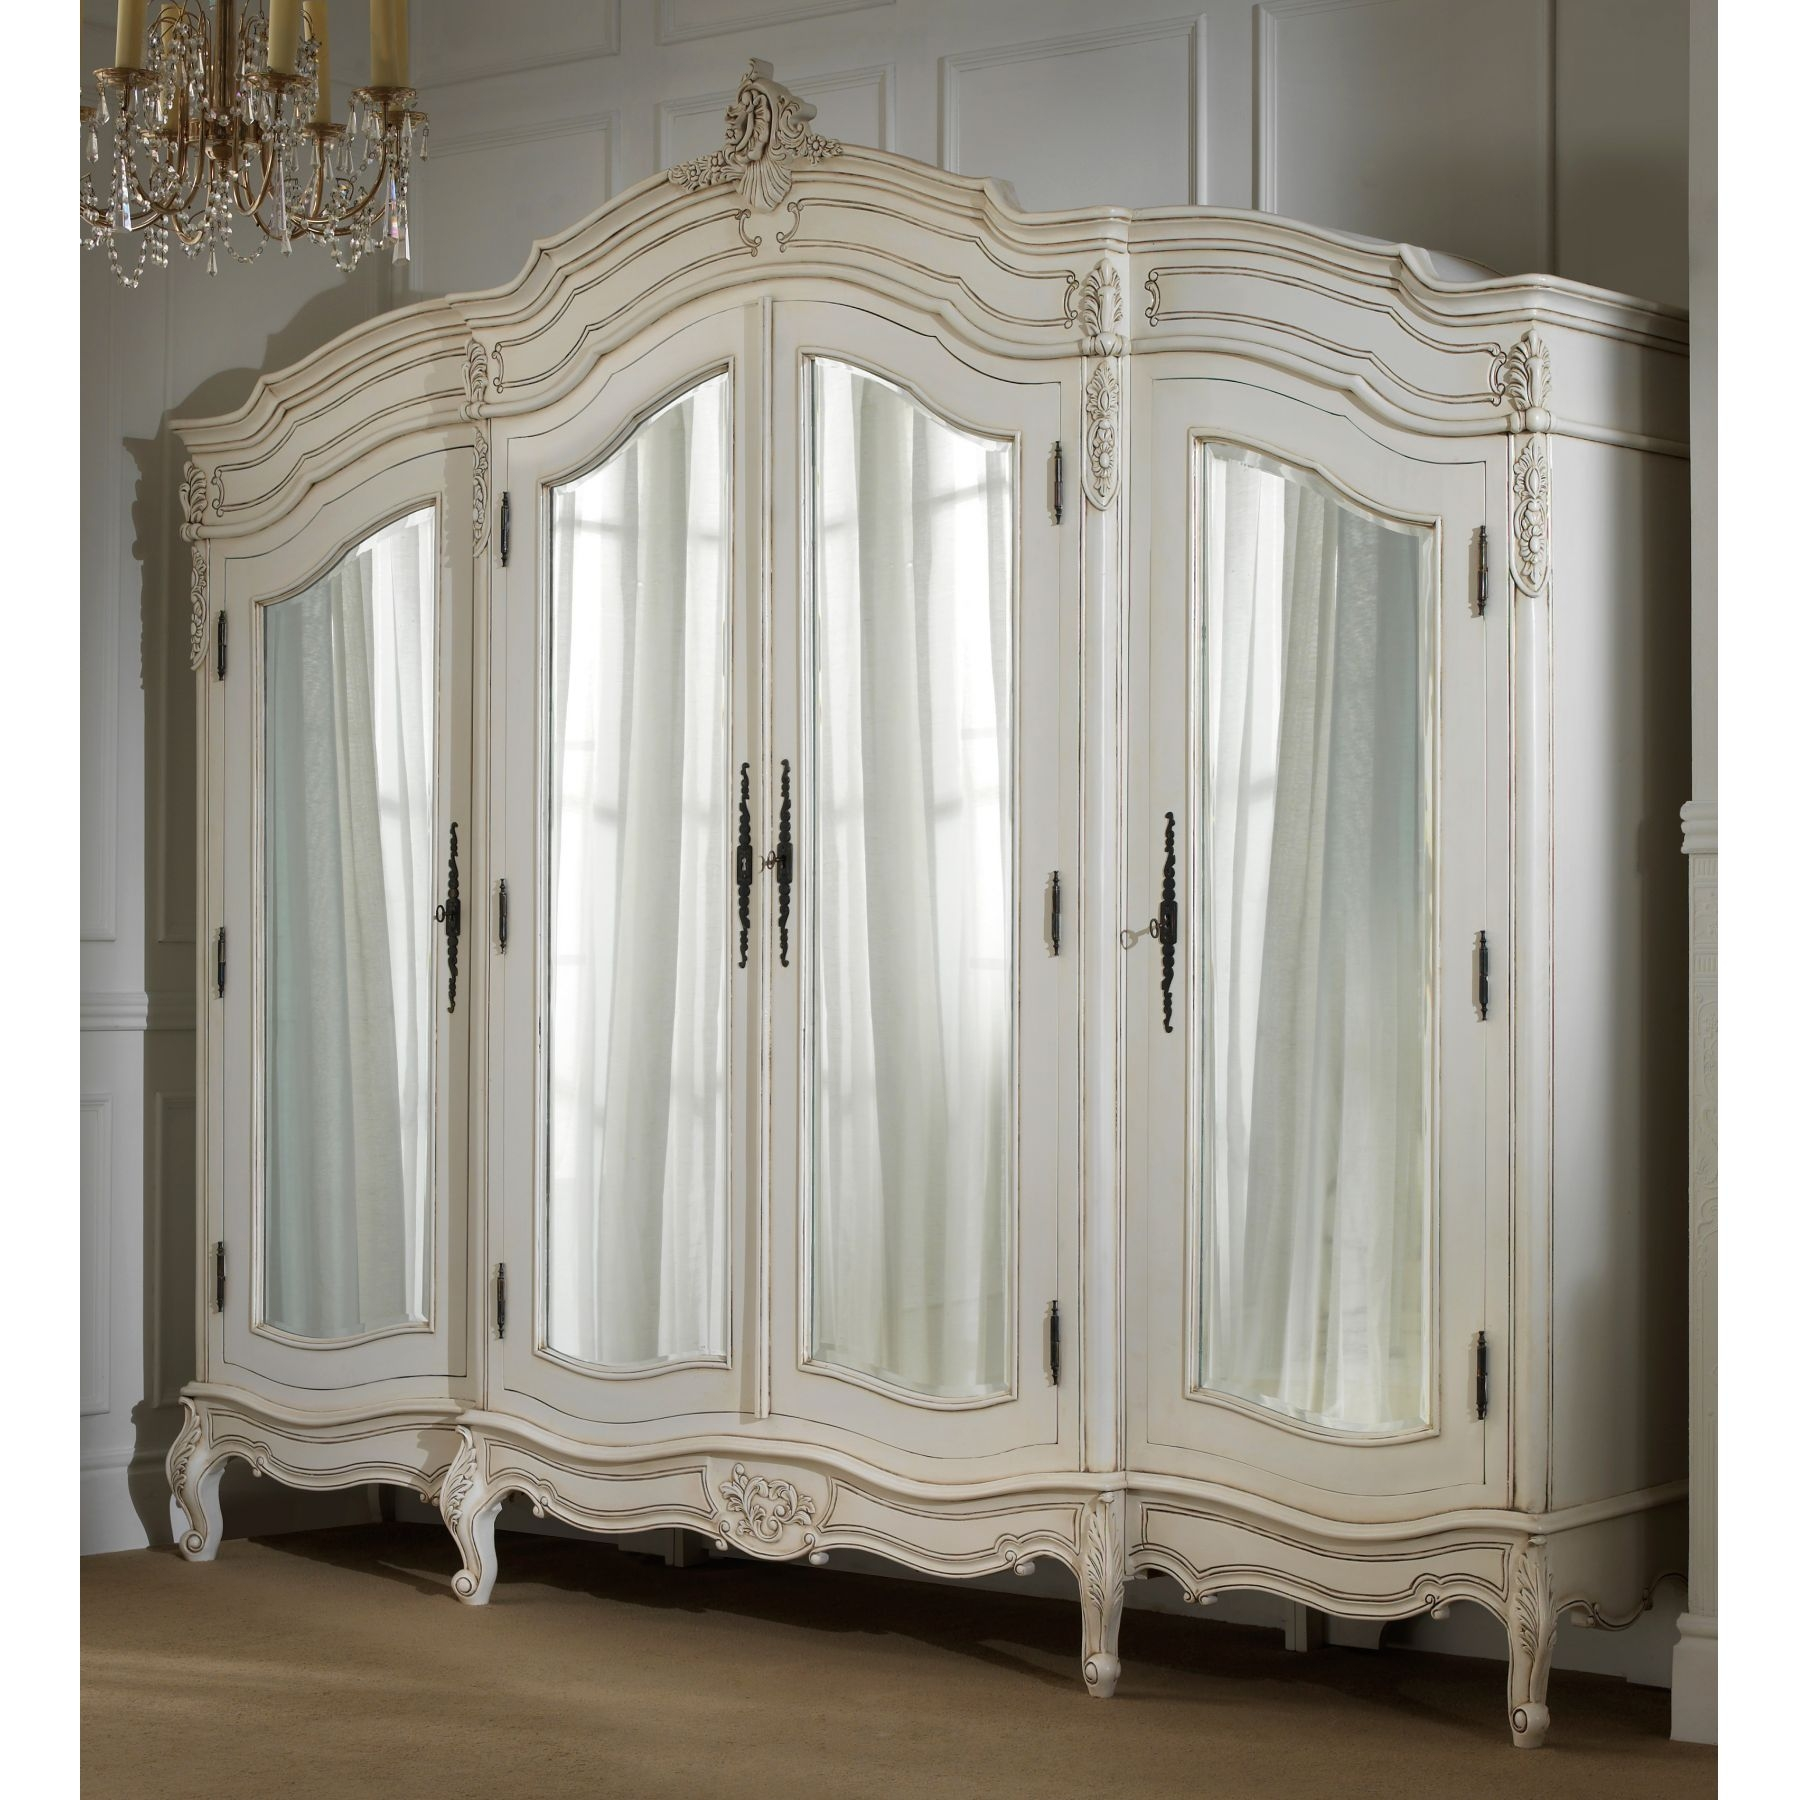 Larmadio Delle Occasioni Wardrobes And Armoires Regarding White Wardrobe Armoire (Image 18 of 25)